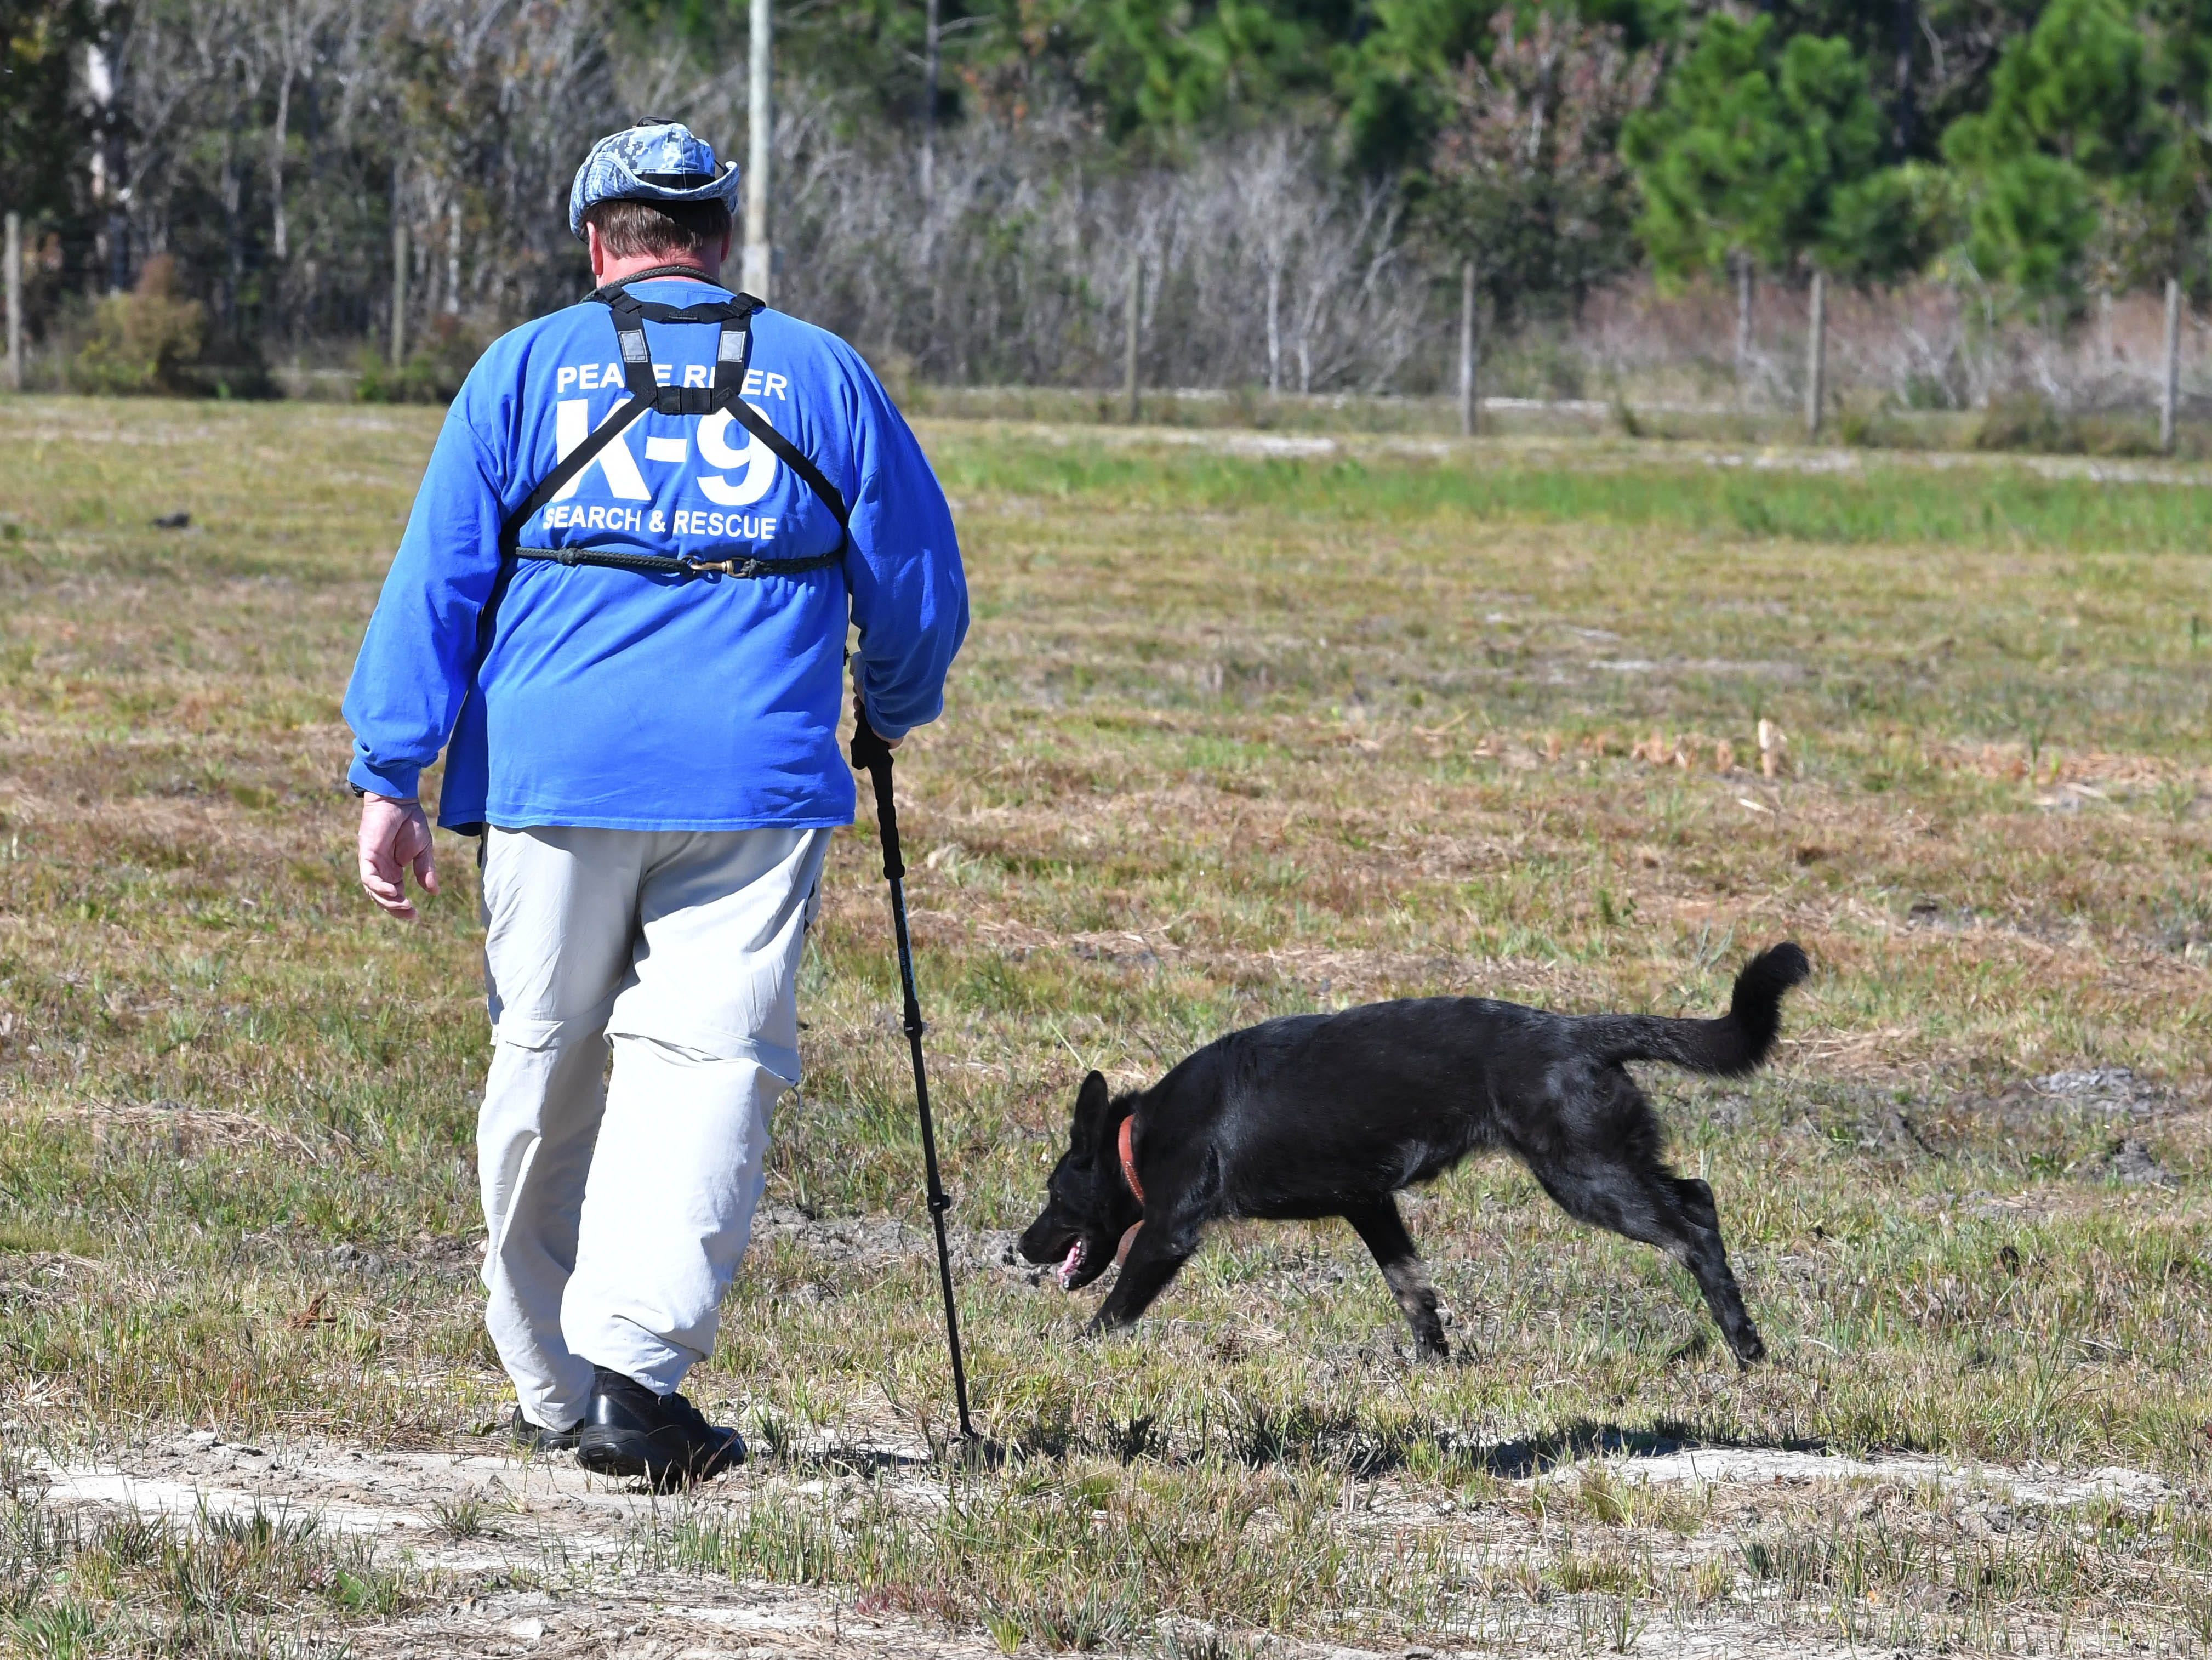 Mike Hadsell of Peace River K-9 Search and Rescue with his dog Damma. On Wednesday, renewed searches began for the remains of missing firefighter Brandy Hall, who disappeared more than 12 years ago. A field that had been a wooded area at the time of her disappearance was among the areas combed over.